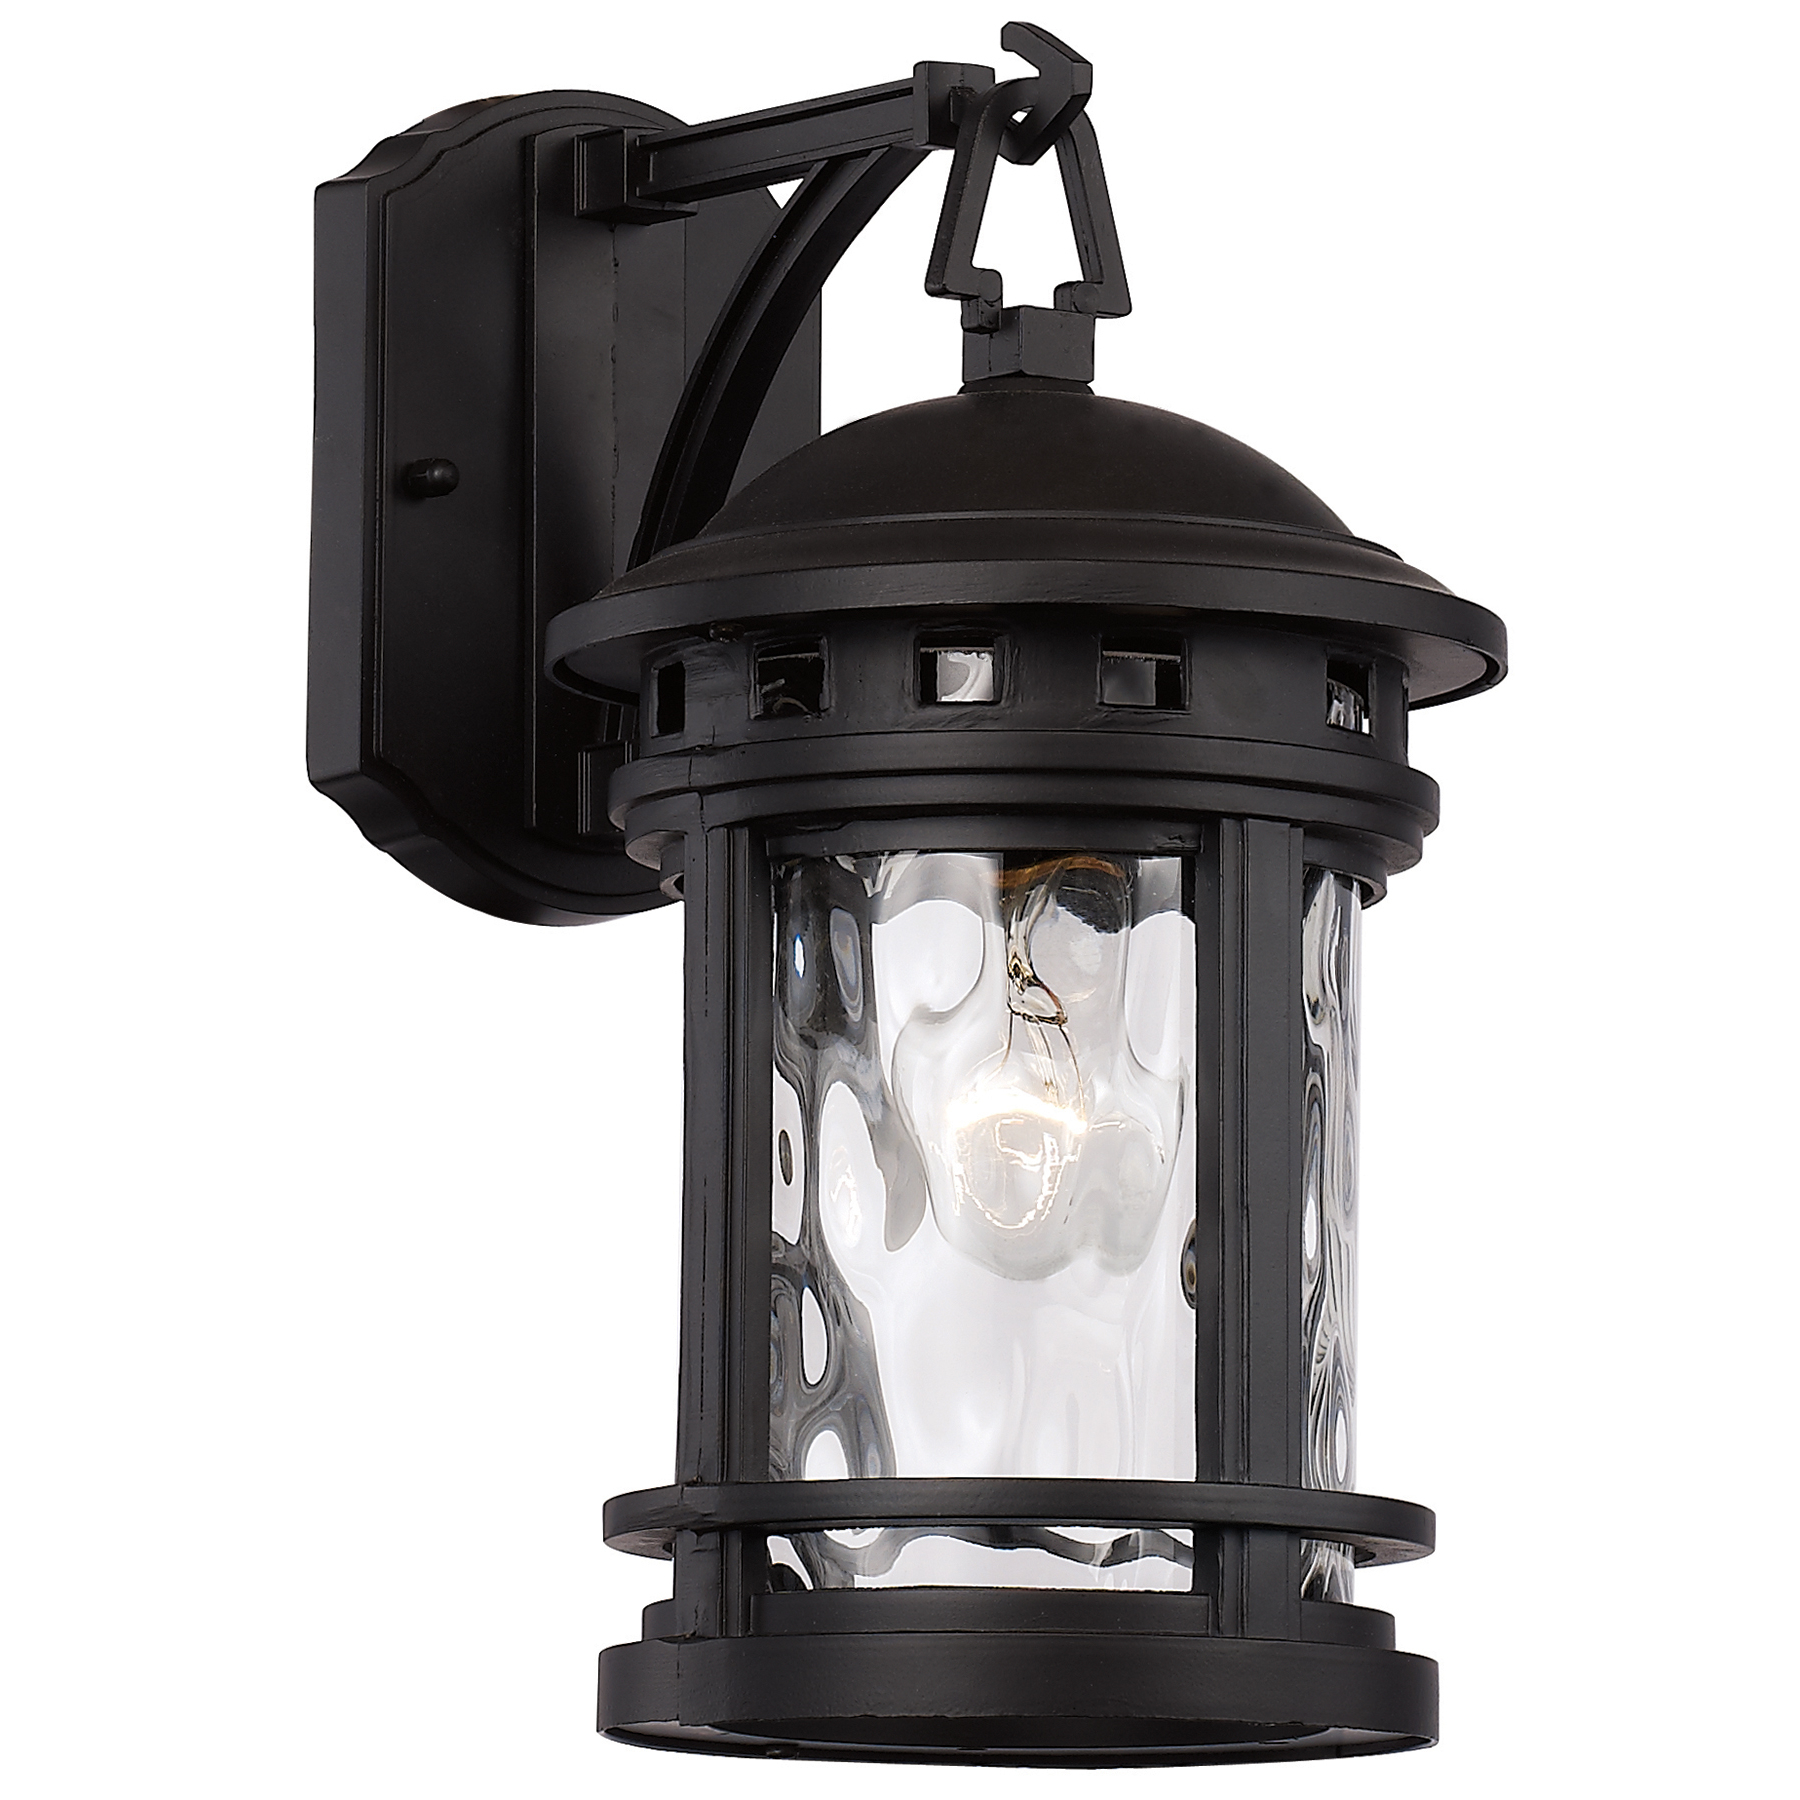 Bel Air Lighting CB 40370 BK 12.5